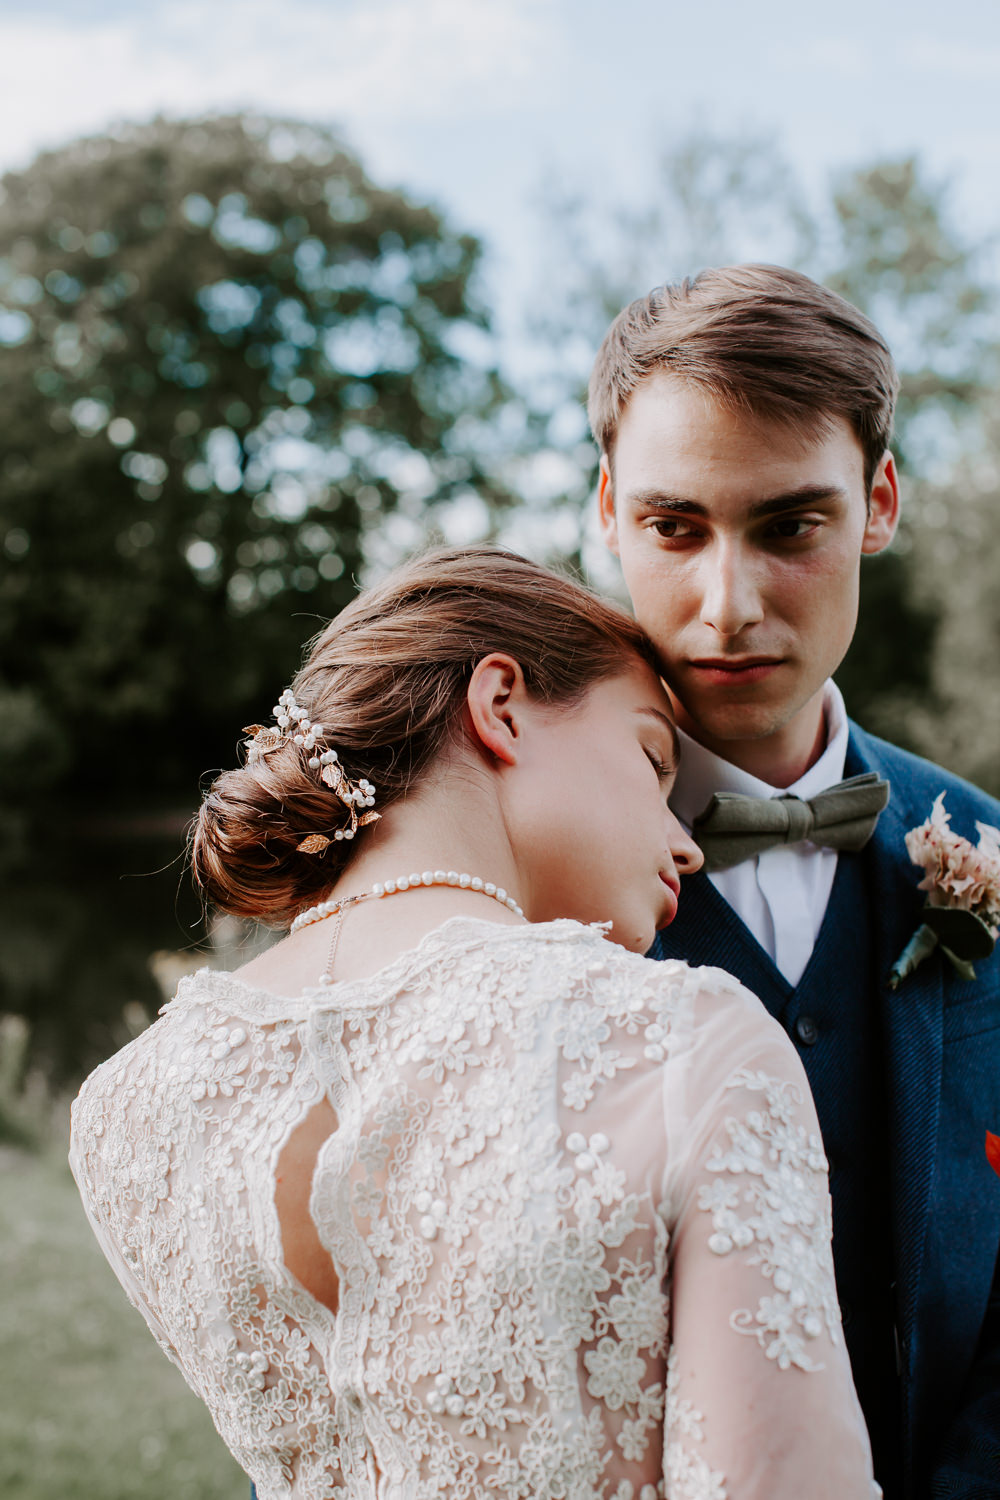 Whimsical Wedding Ideas Charlotte Lucy Photography Bride Bridal Hair Style Up Do